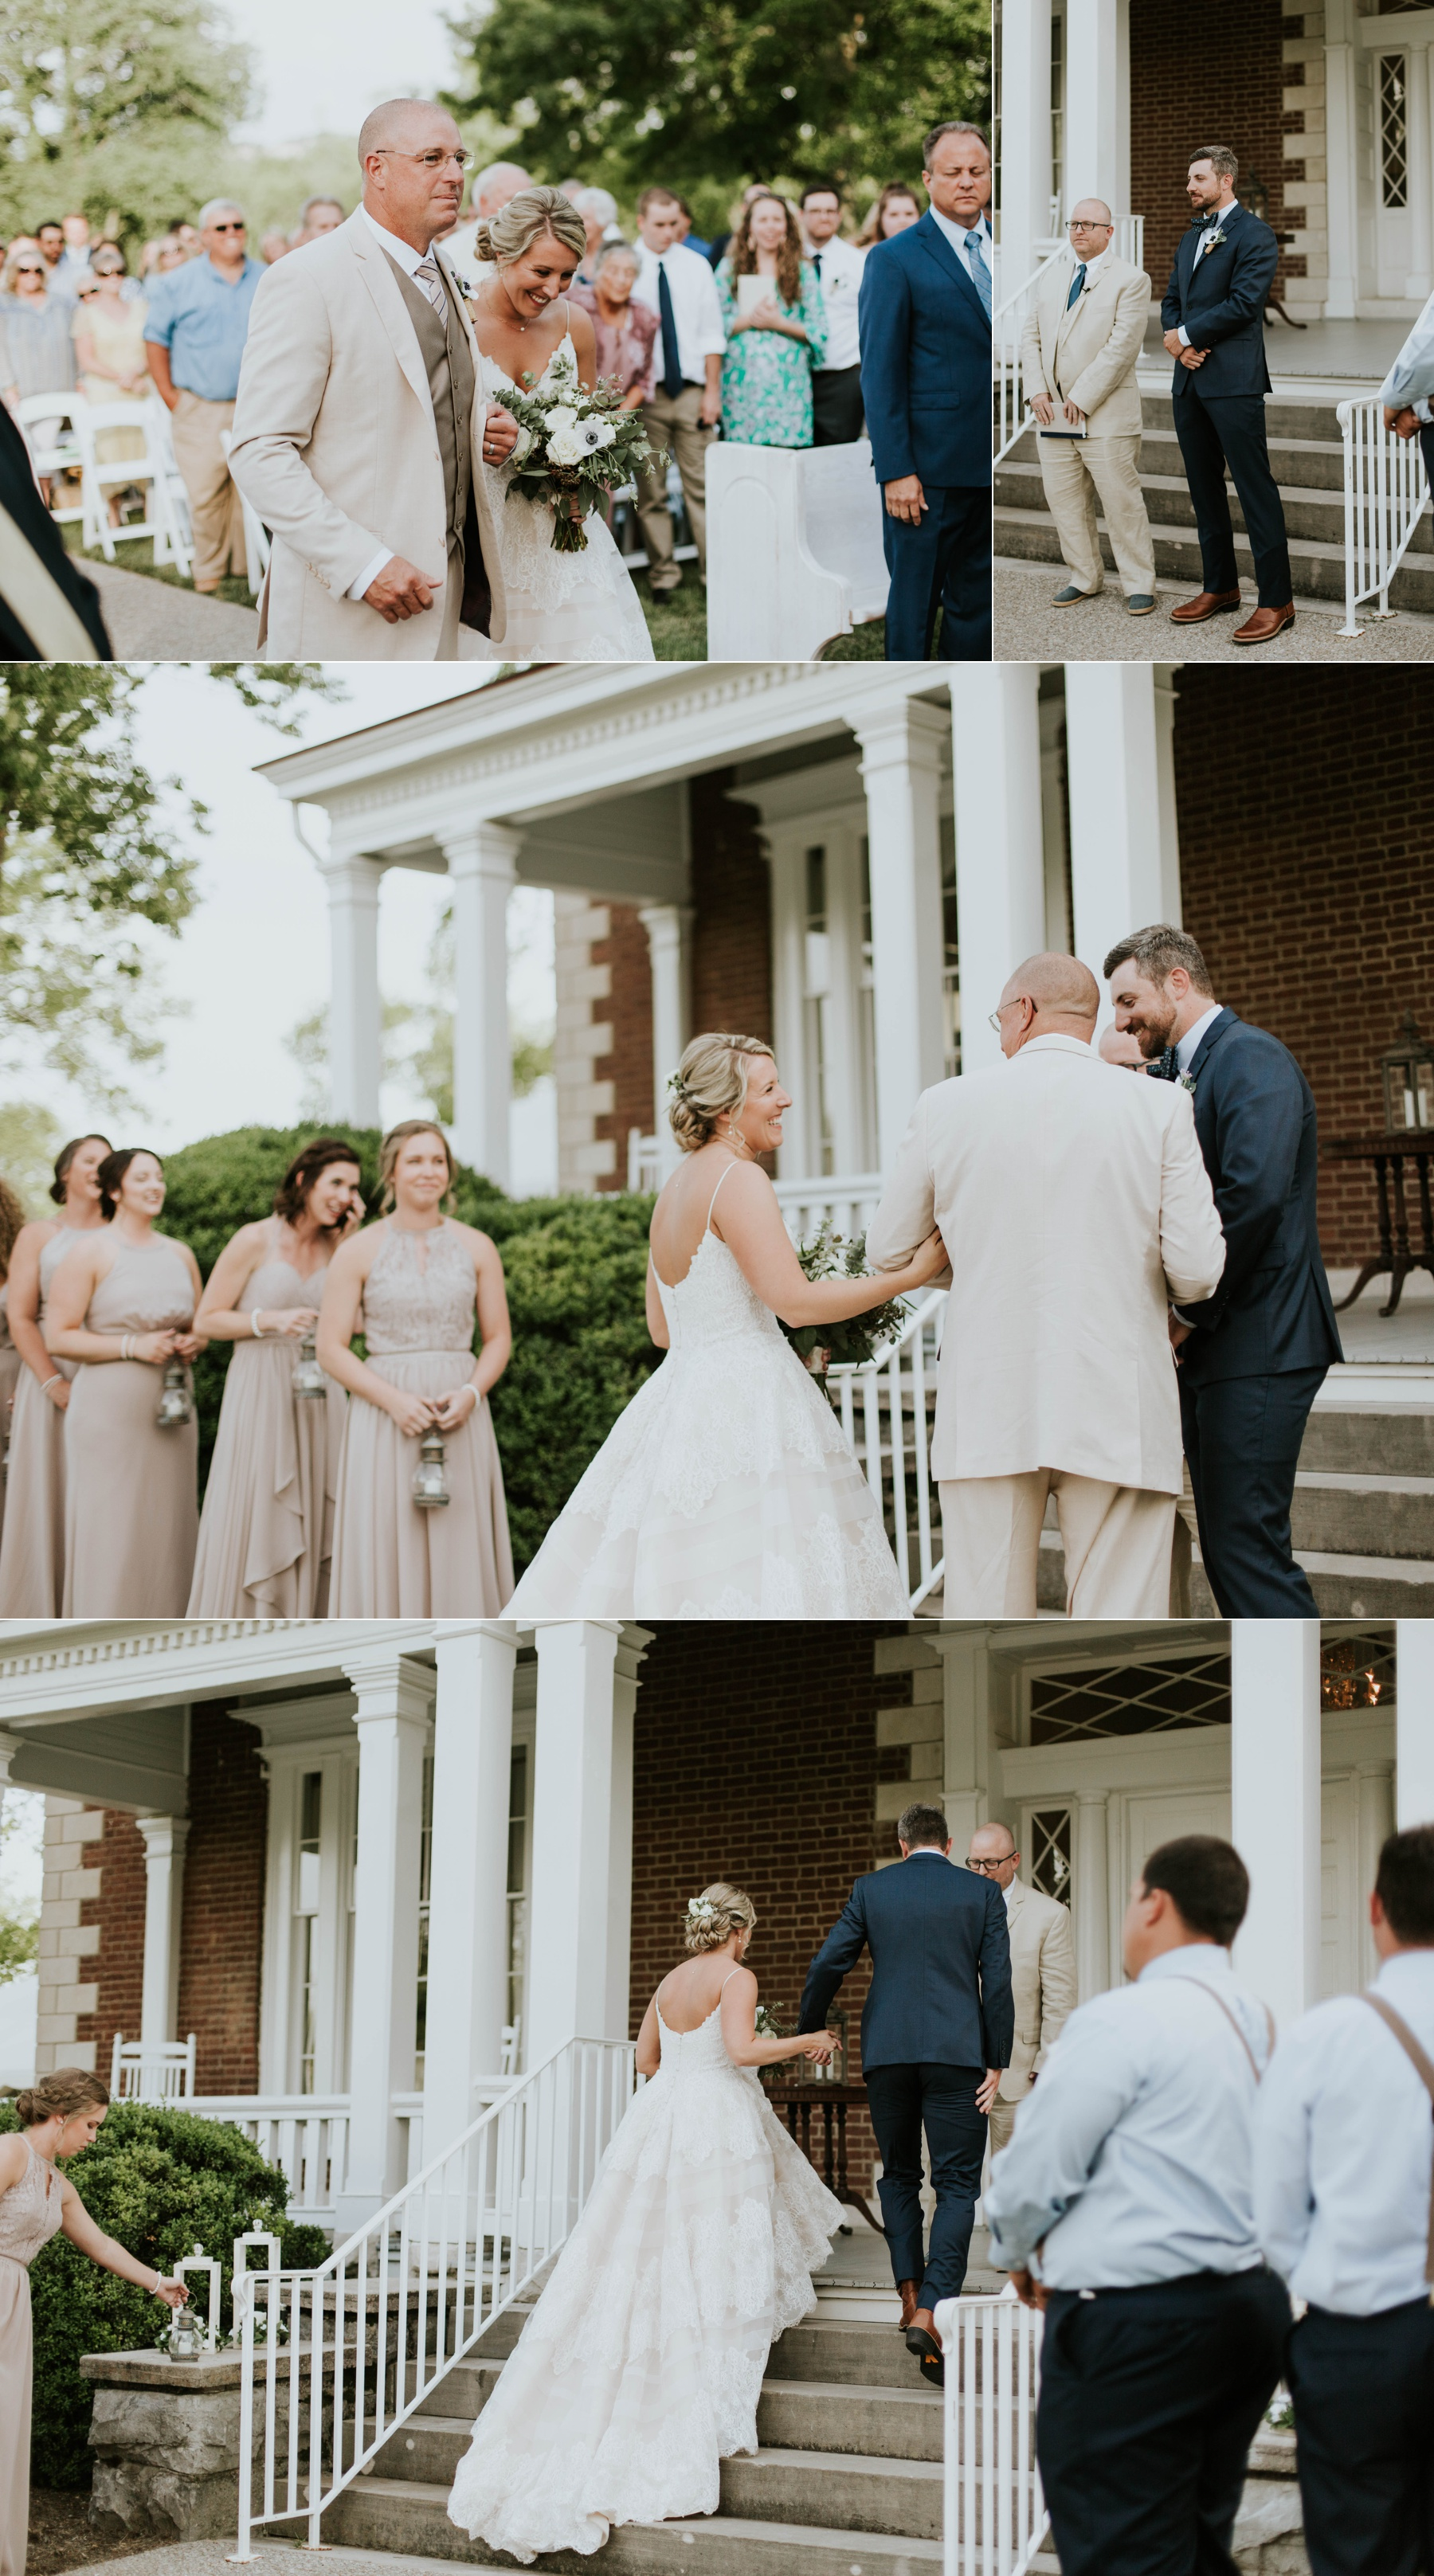 RavenswoodMansionWeddingThroughVictoriasLens34.jpg